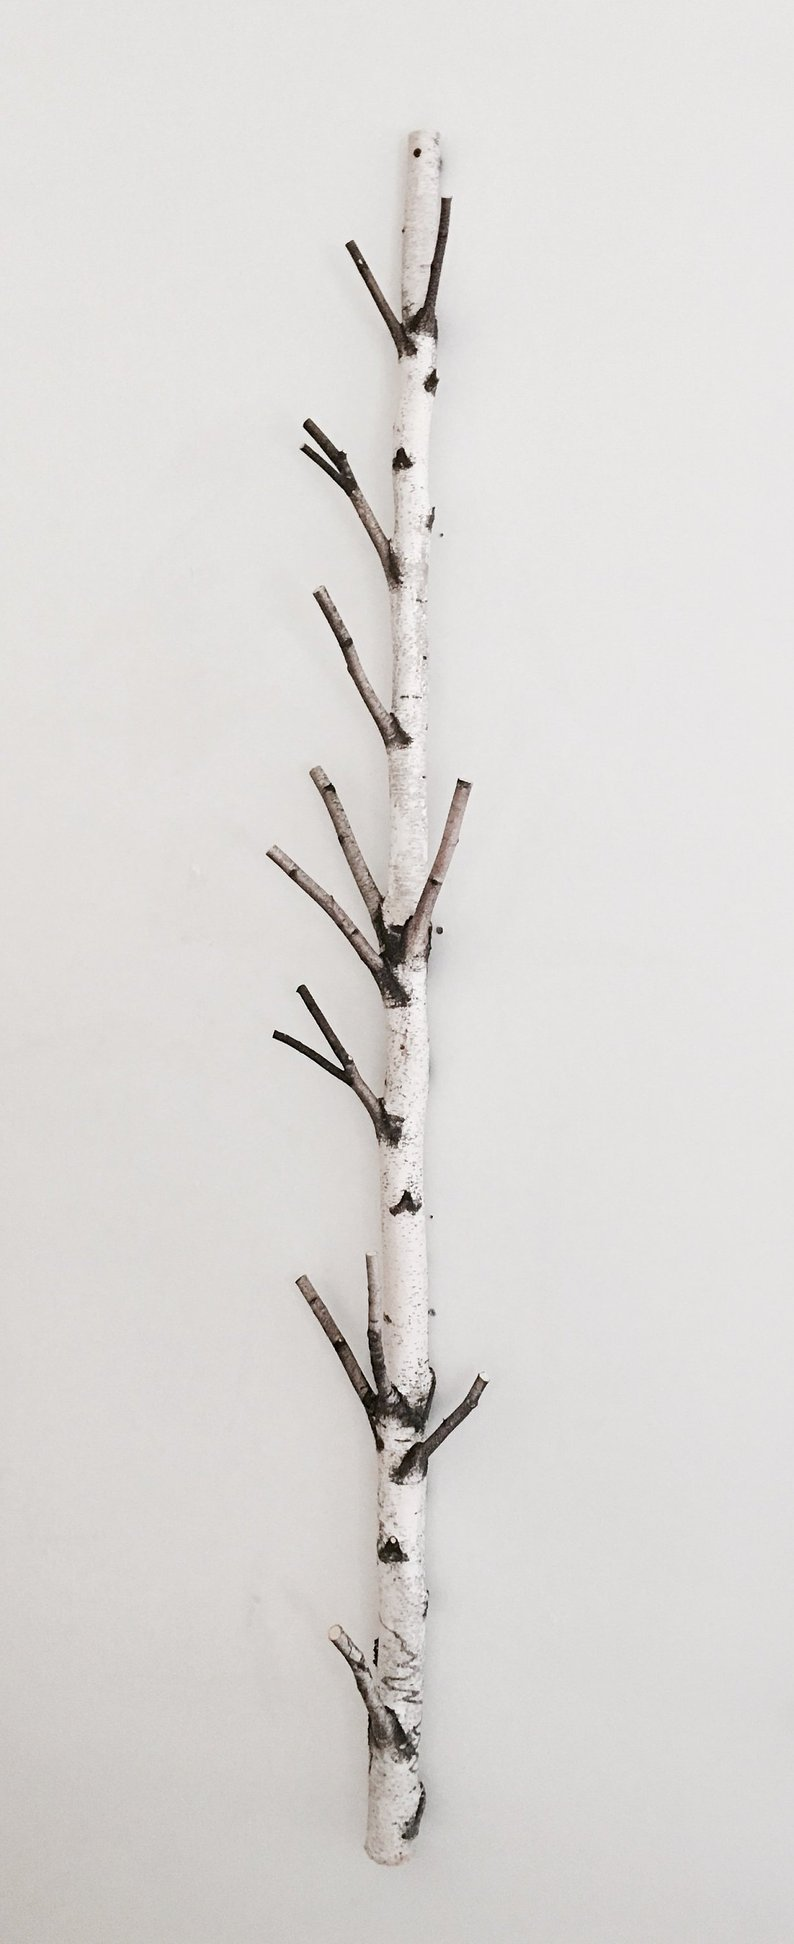 White Birch Tree Coat Rack Birch Branch Birch Pole Birch Log Trunk Coat Rack Coat Tree Wooden Hooks Modern Rustic Wall Decor Tree Coat Rack